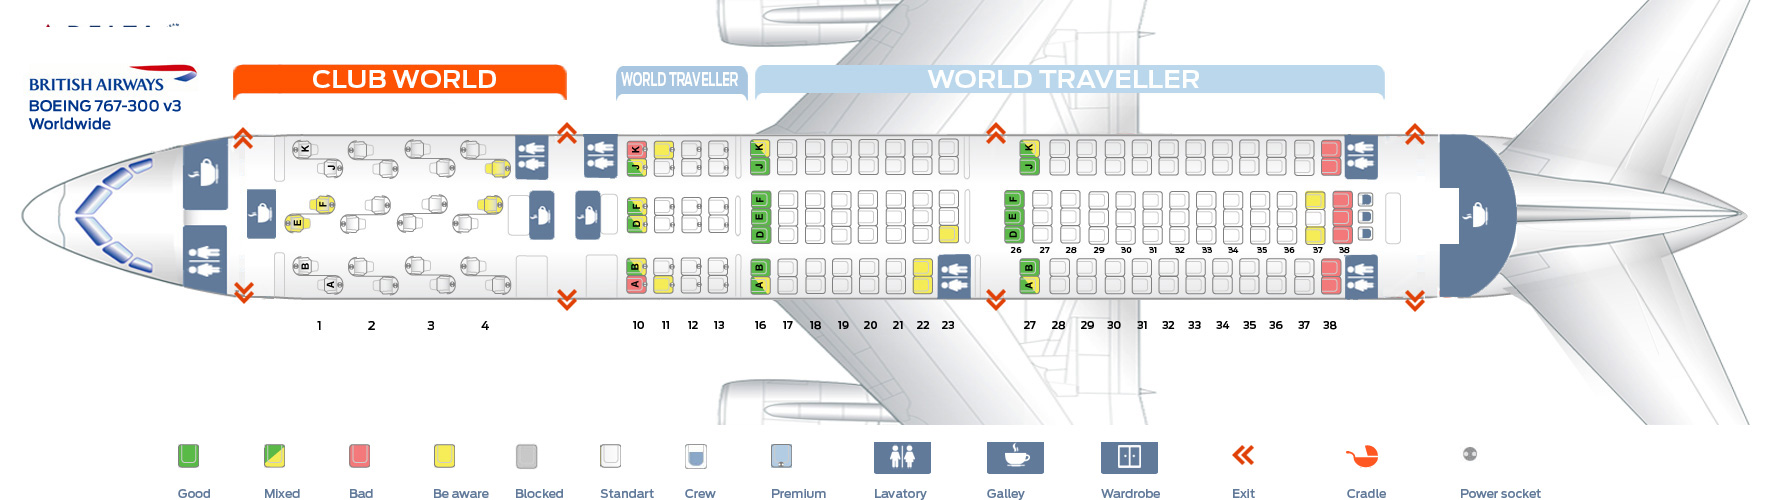 Seat_map_British_Airways_Boeing-767_300_v3_worldwide